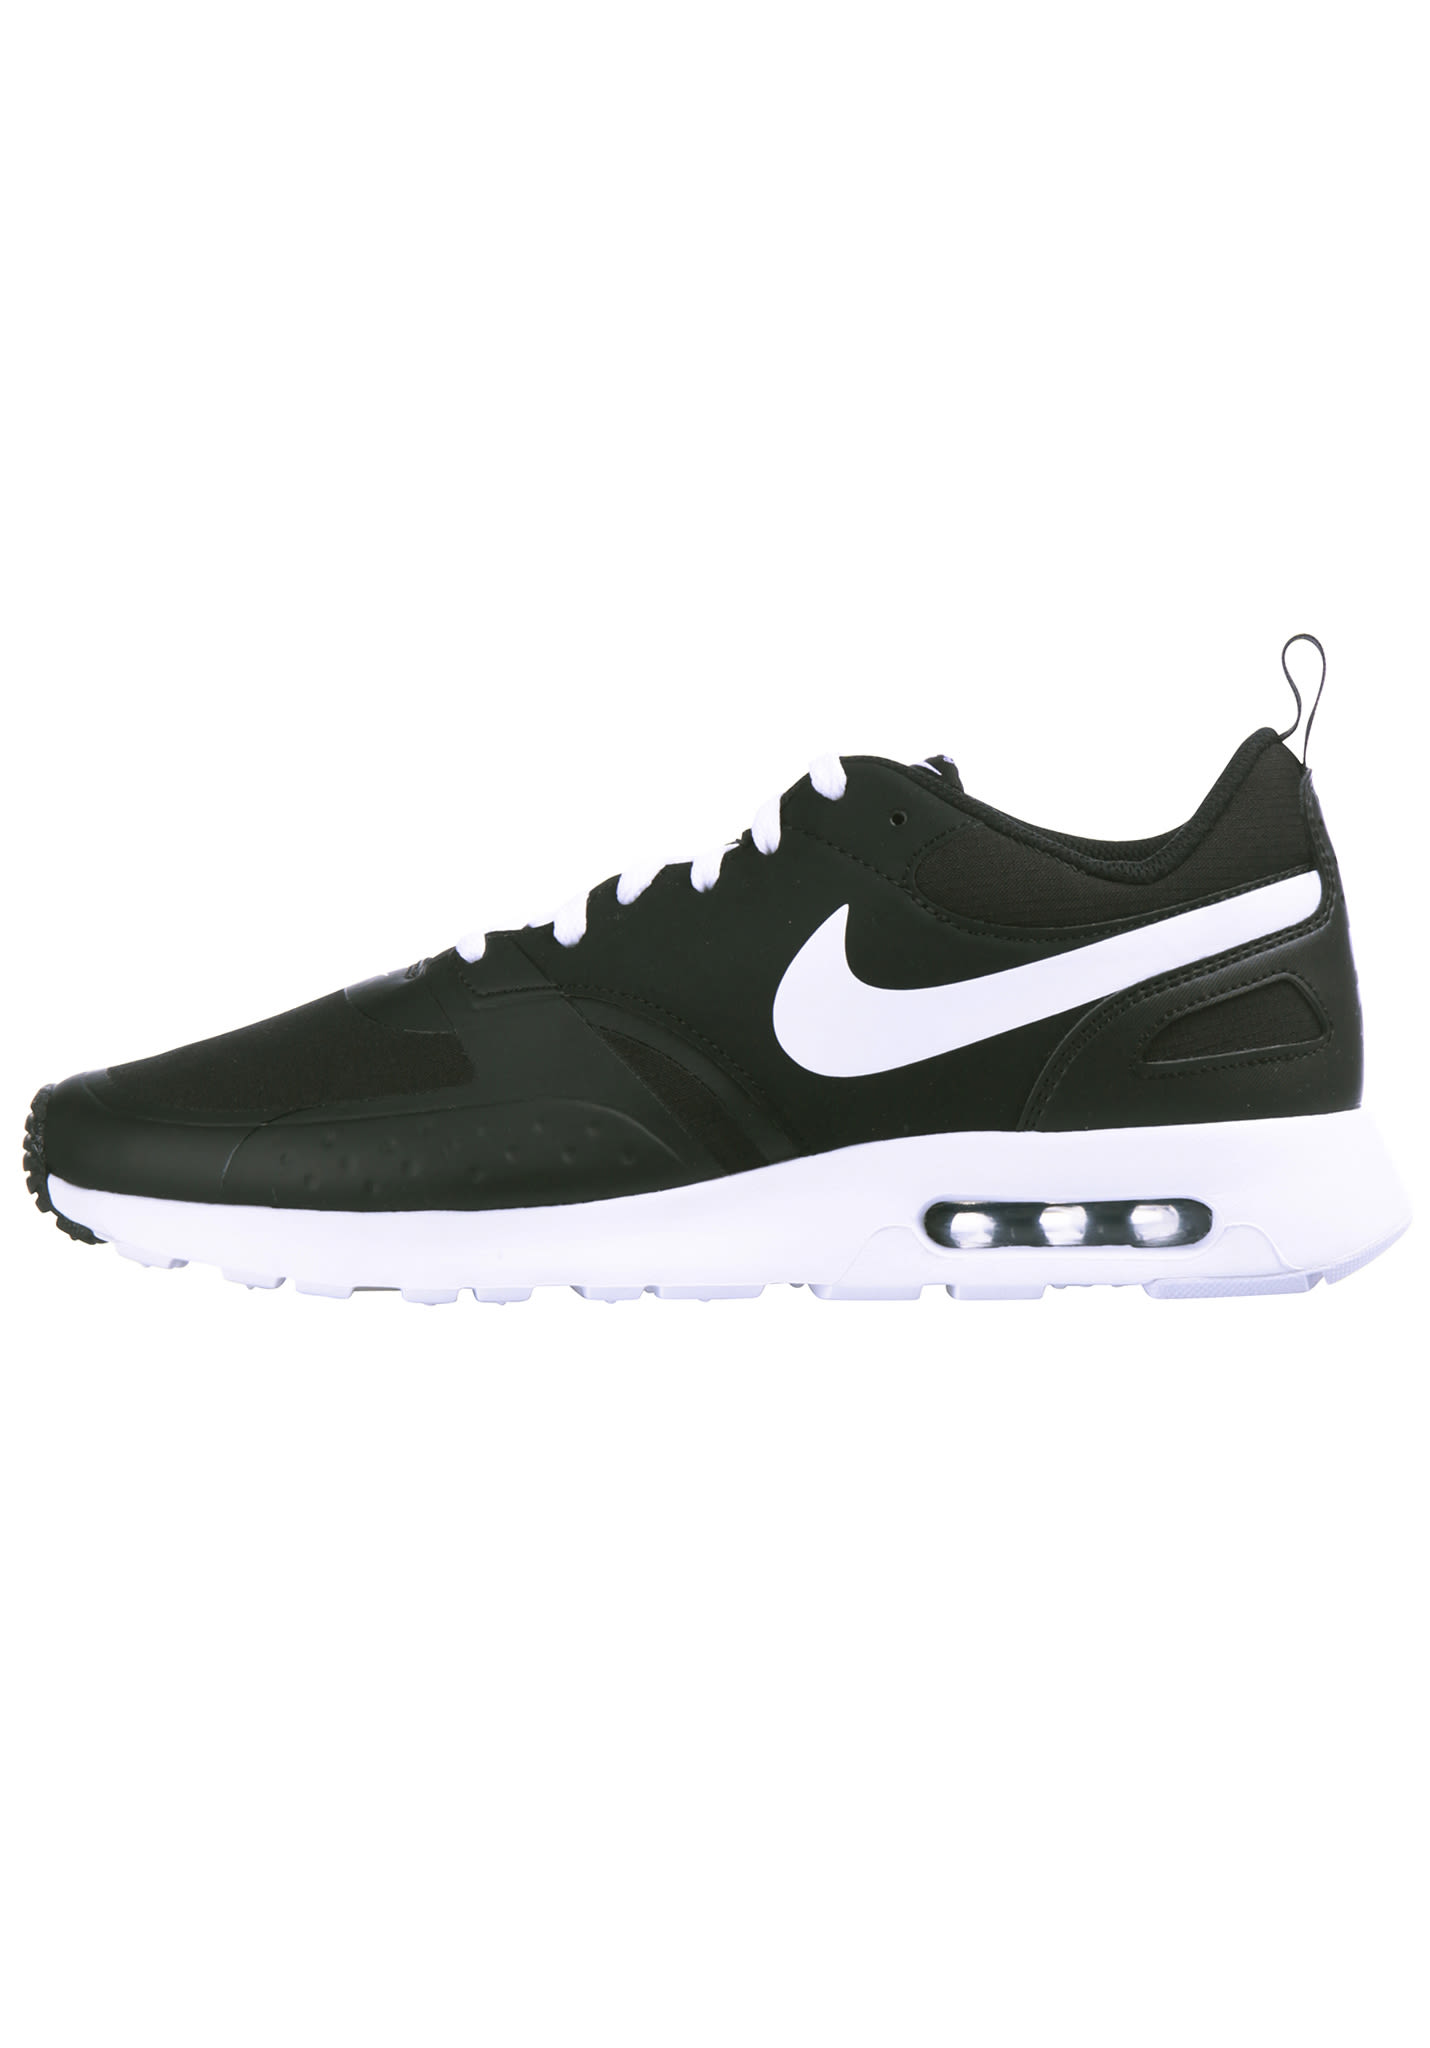 6ee4c94f15de09 NIKE SPORTSWEAR Air Max Vision - Sneakers for Men - Black - Planet Sports